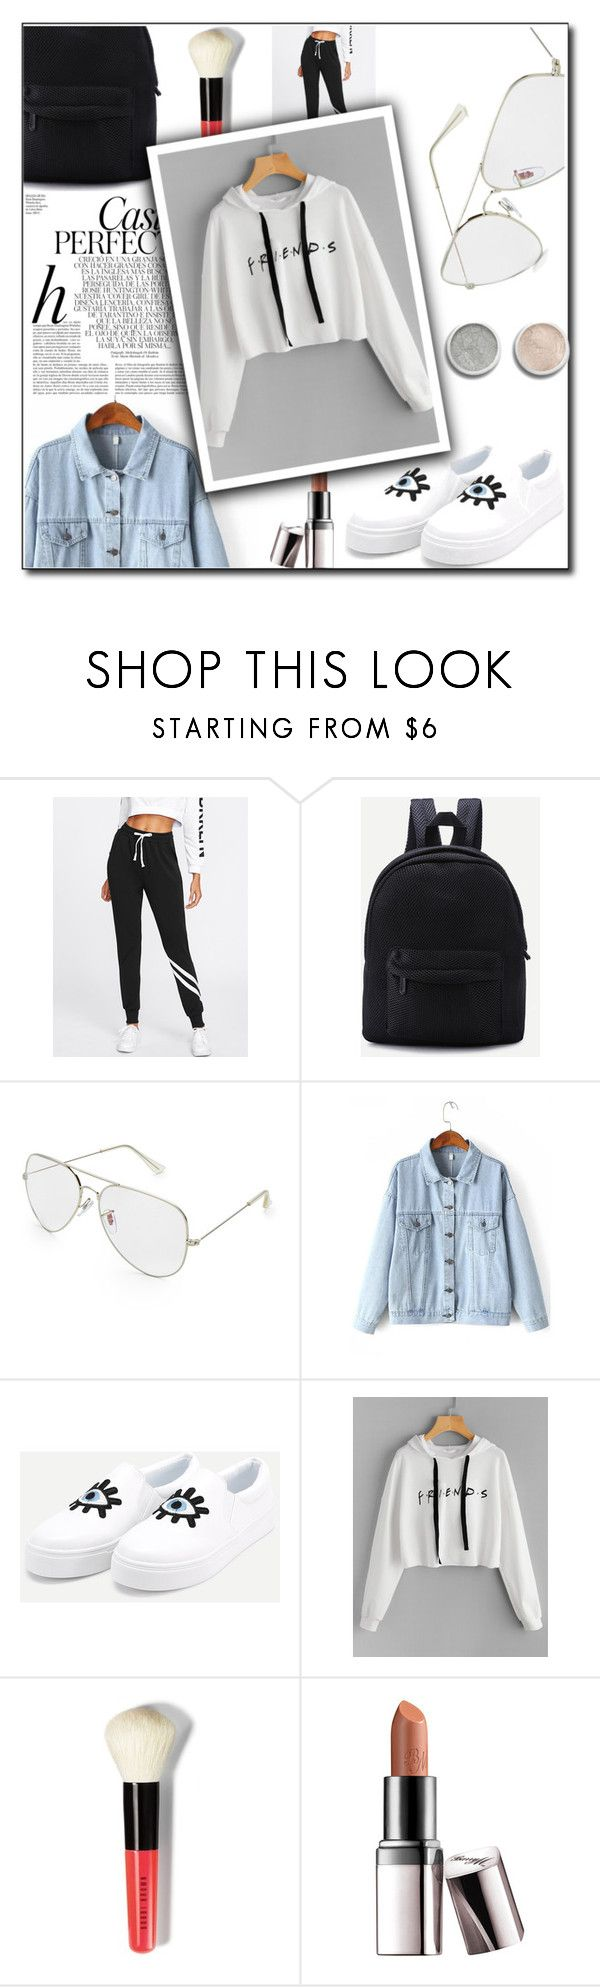 OOTD - Friends Logo by artbyjwp on Polyvore featuring Bobbi Brown Cosmetics, Barry M, Terre Mère and Whiteley